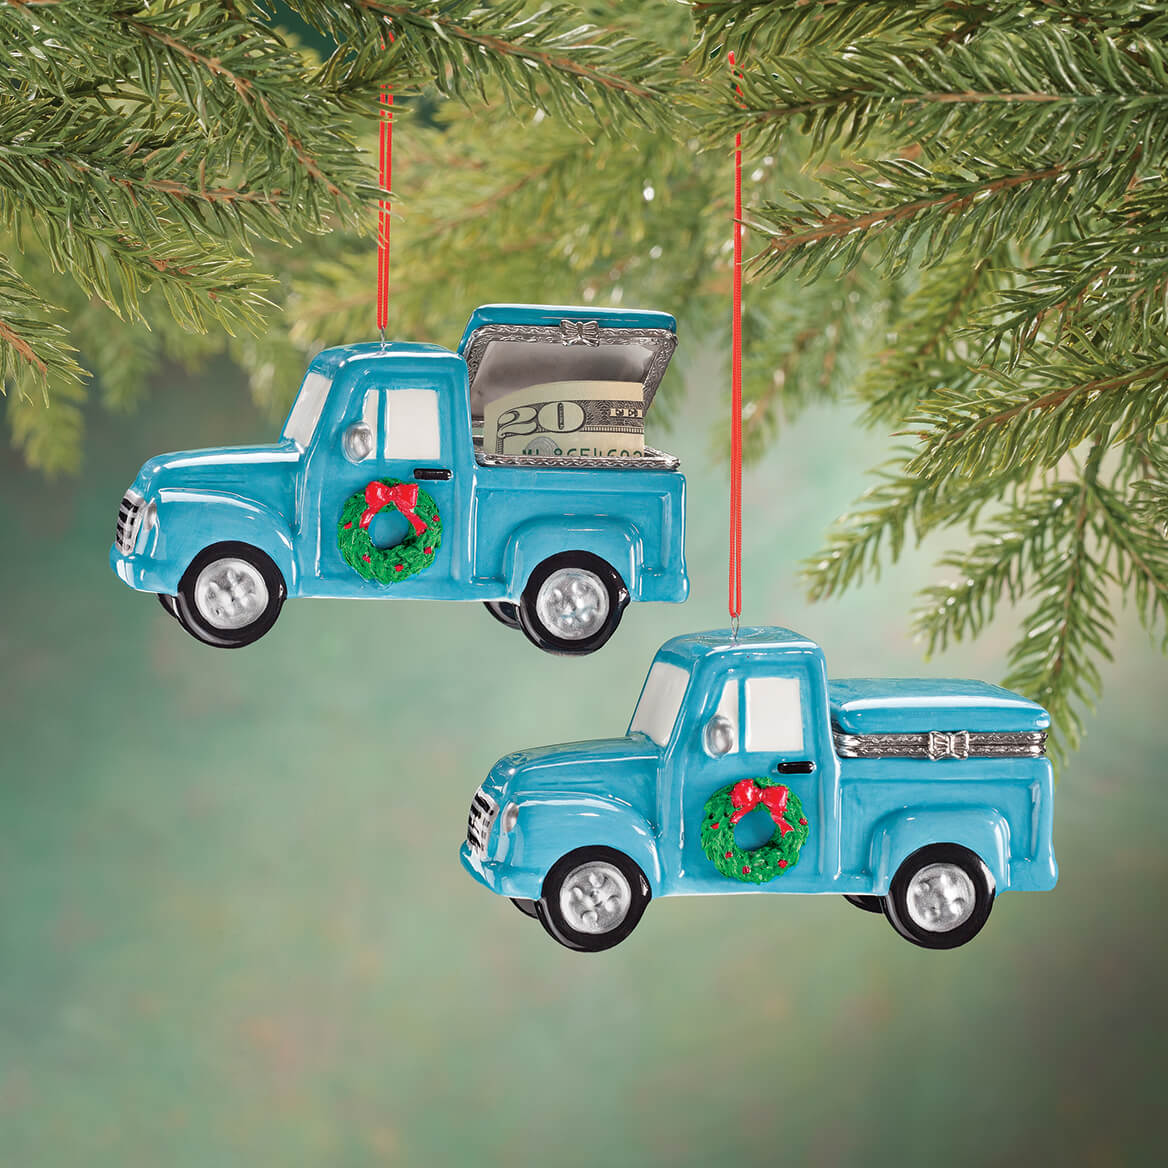 Vintage Truck with Tree Ornament Trinket Box-356327